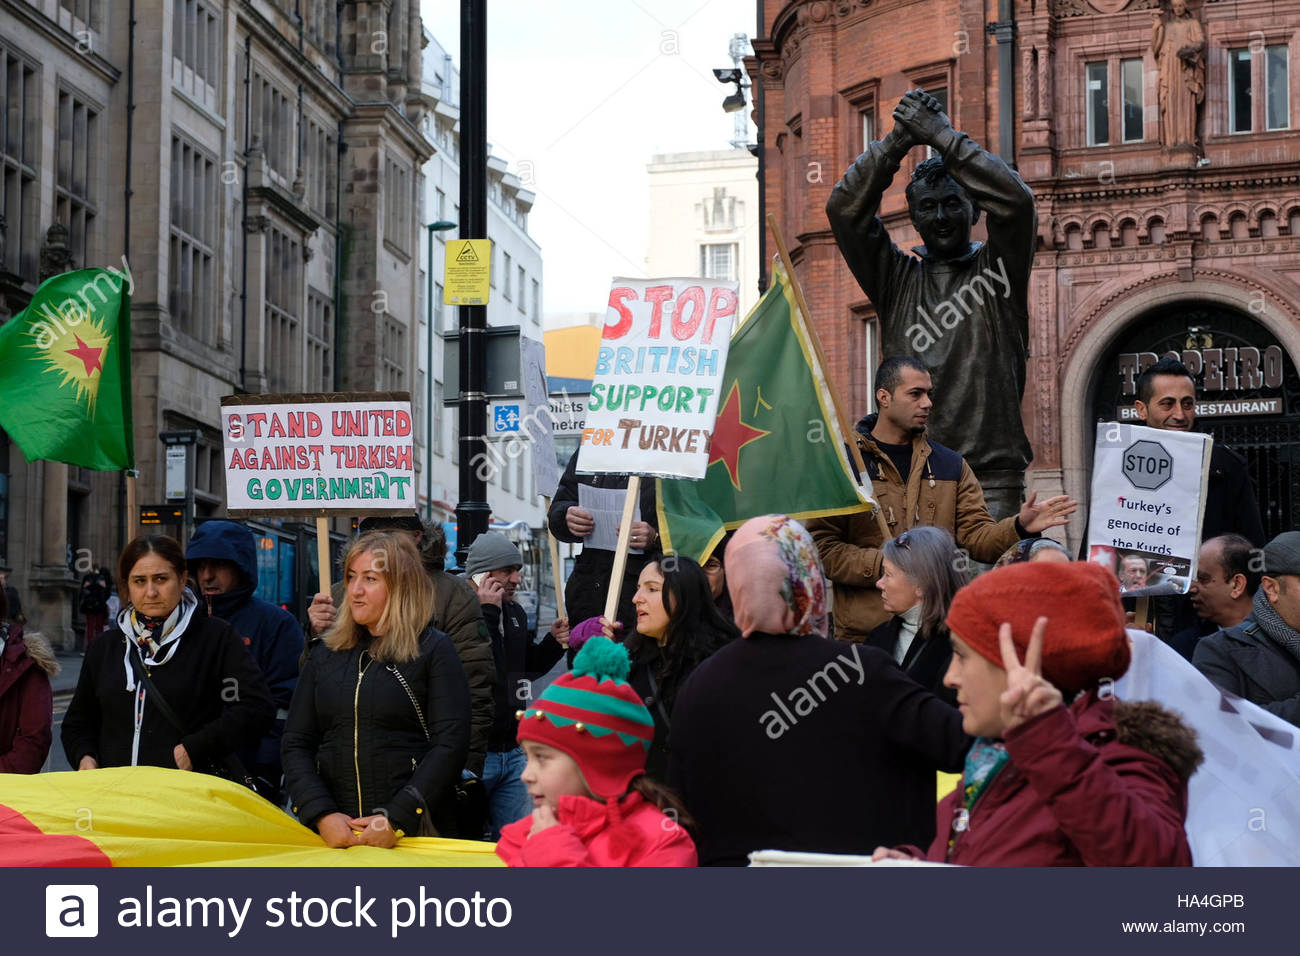 Nottingham, England, 27 November 2016  Protest against Turkey's treatment of Kurds and the denial of free speech - Stock Image